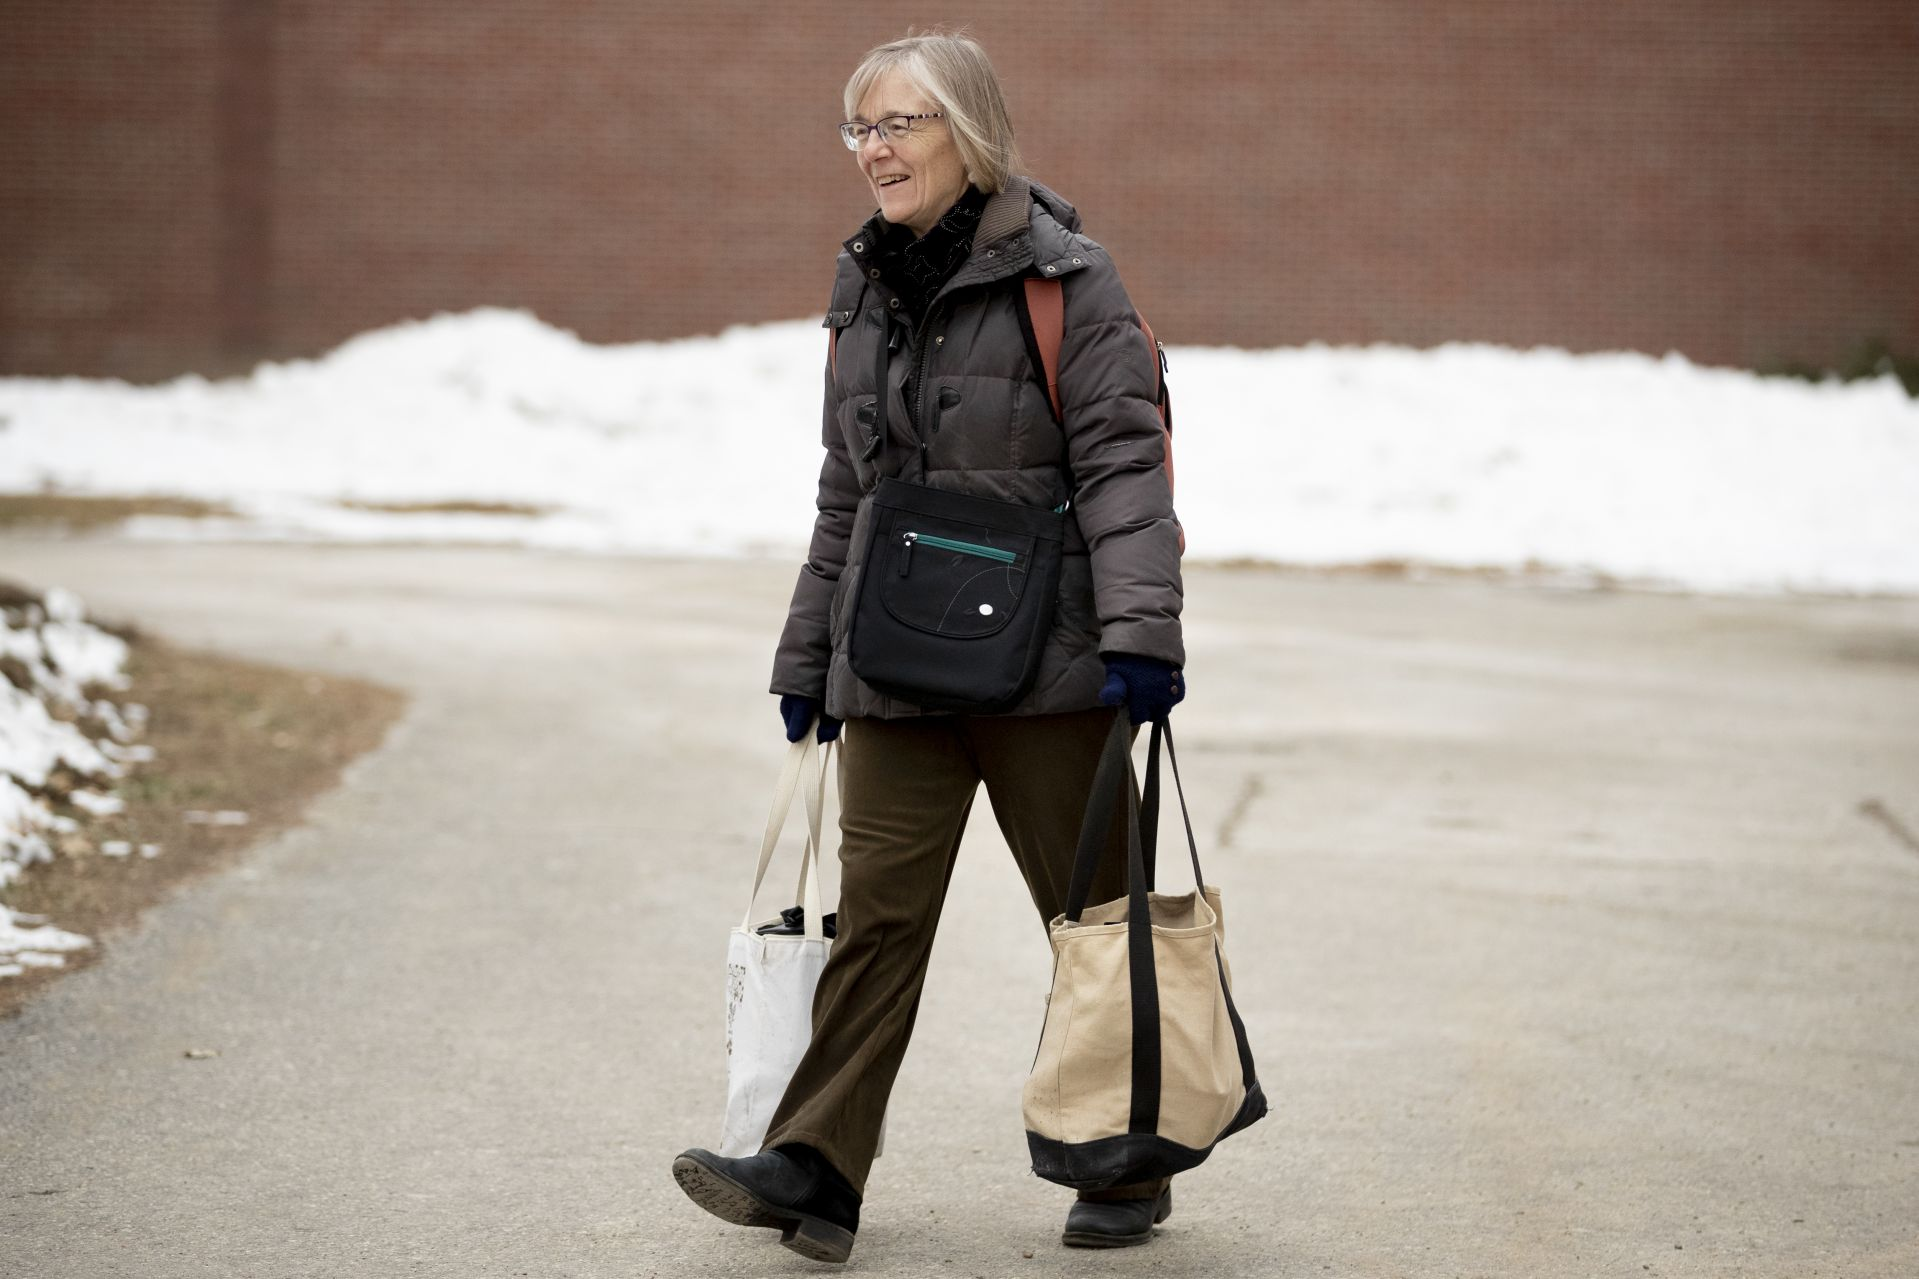 Costlow departs campus on the afternoon of the semester's last day of classes. (Phyllis Graber Jensen/Bates College)